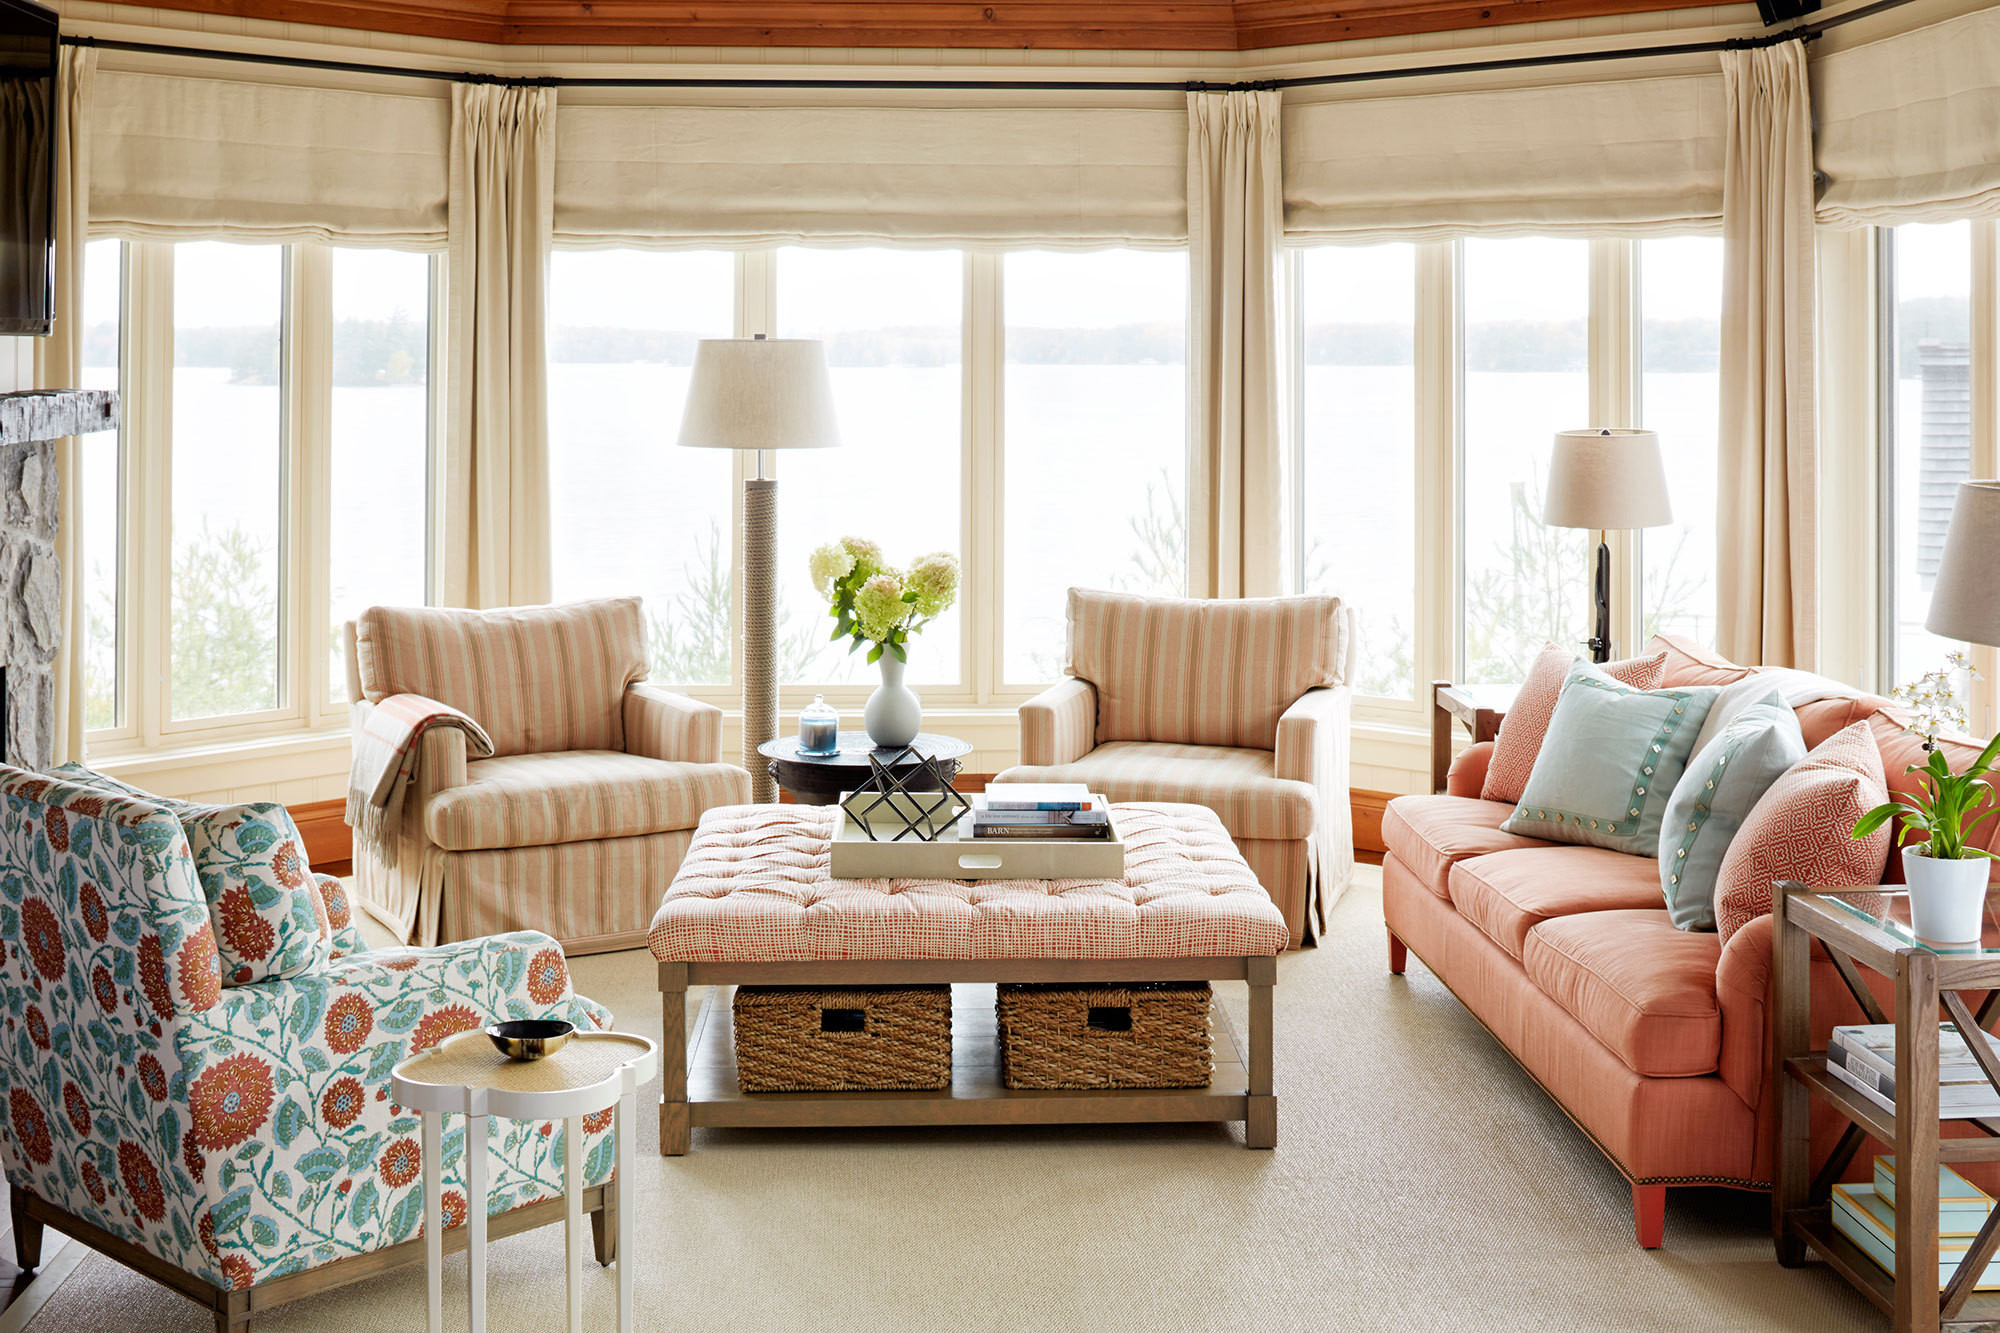 Lake House Decorating Ideas Easy latest interior designs for home latest home interior design trends fds top interior designers set In The Family Room Overlooking Lake Joseph Upholstered Furnishings And Understatedhues Create